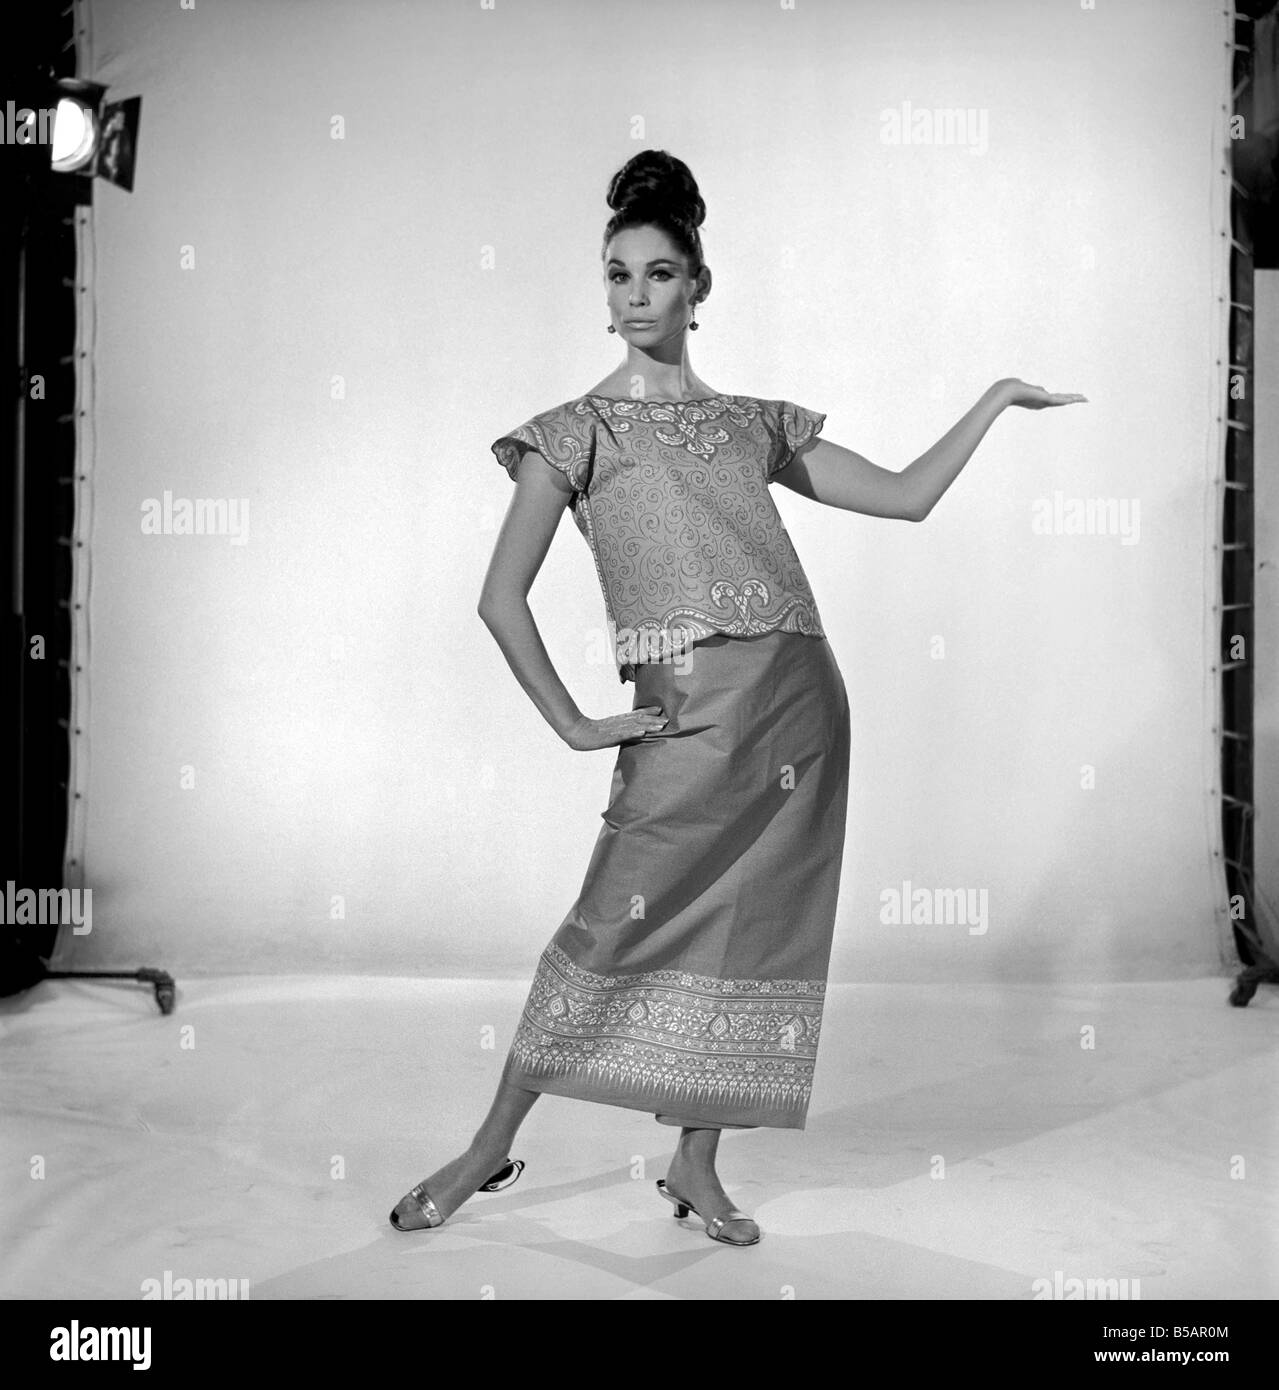 Imogen Woodford modelling a outfit with a far eastern influence. 1965 - Stock Image